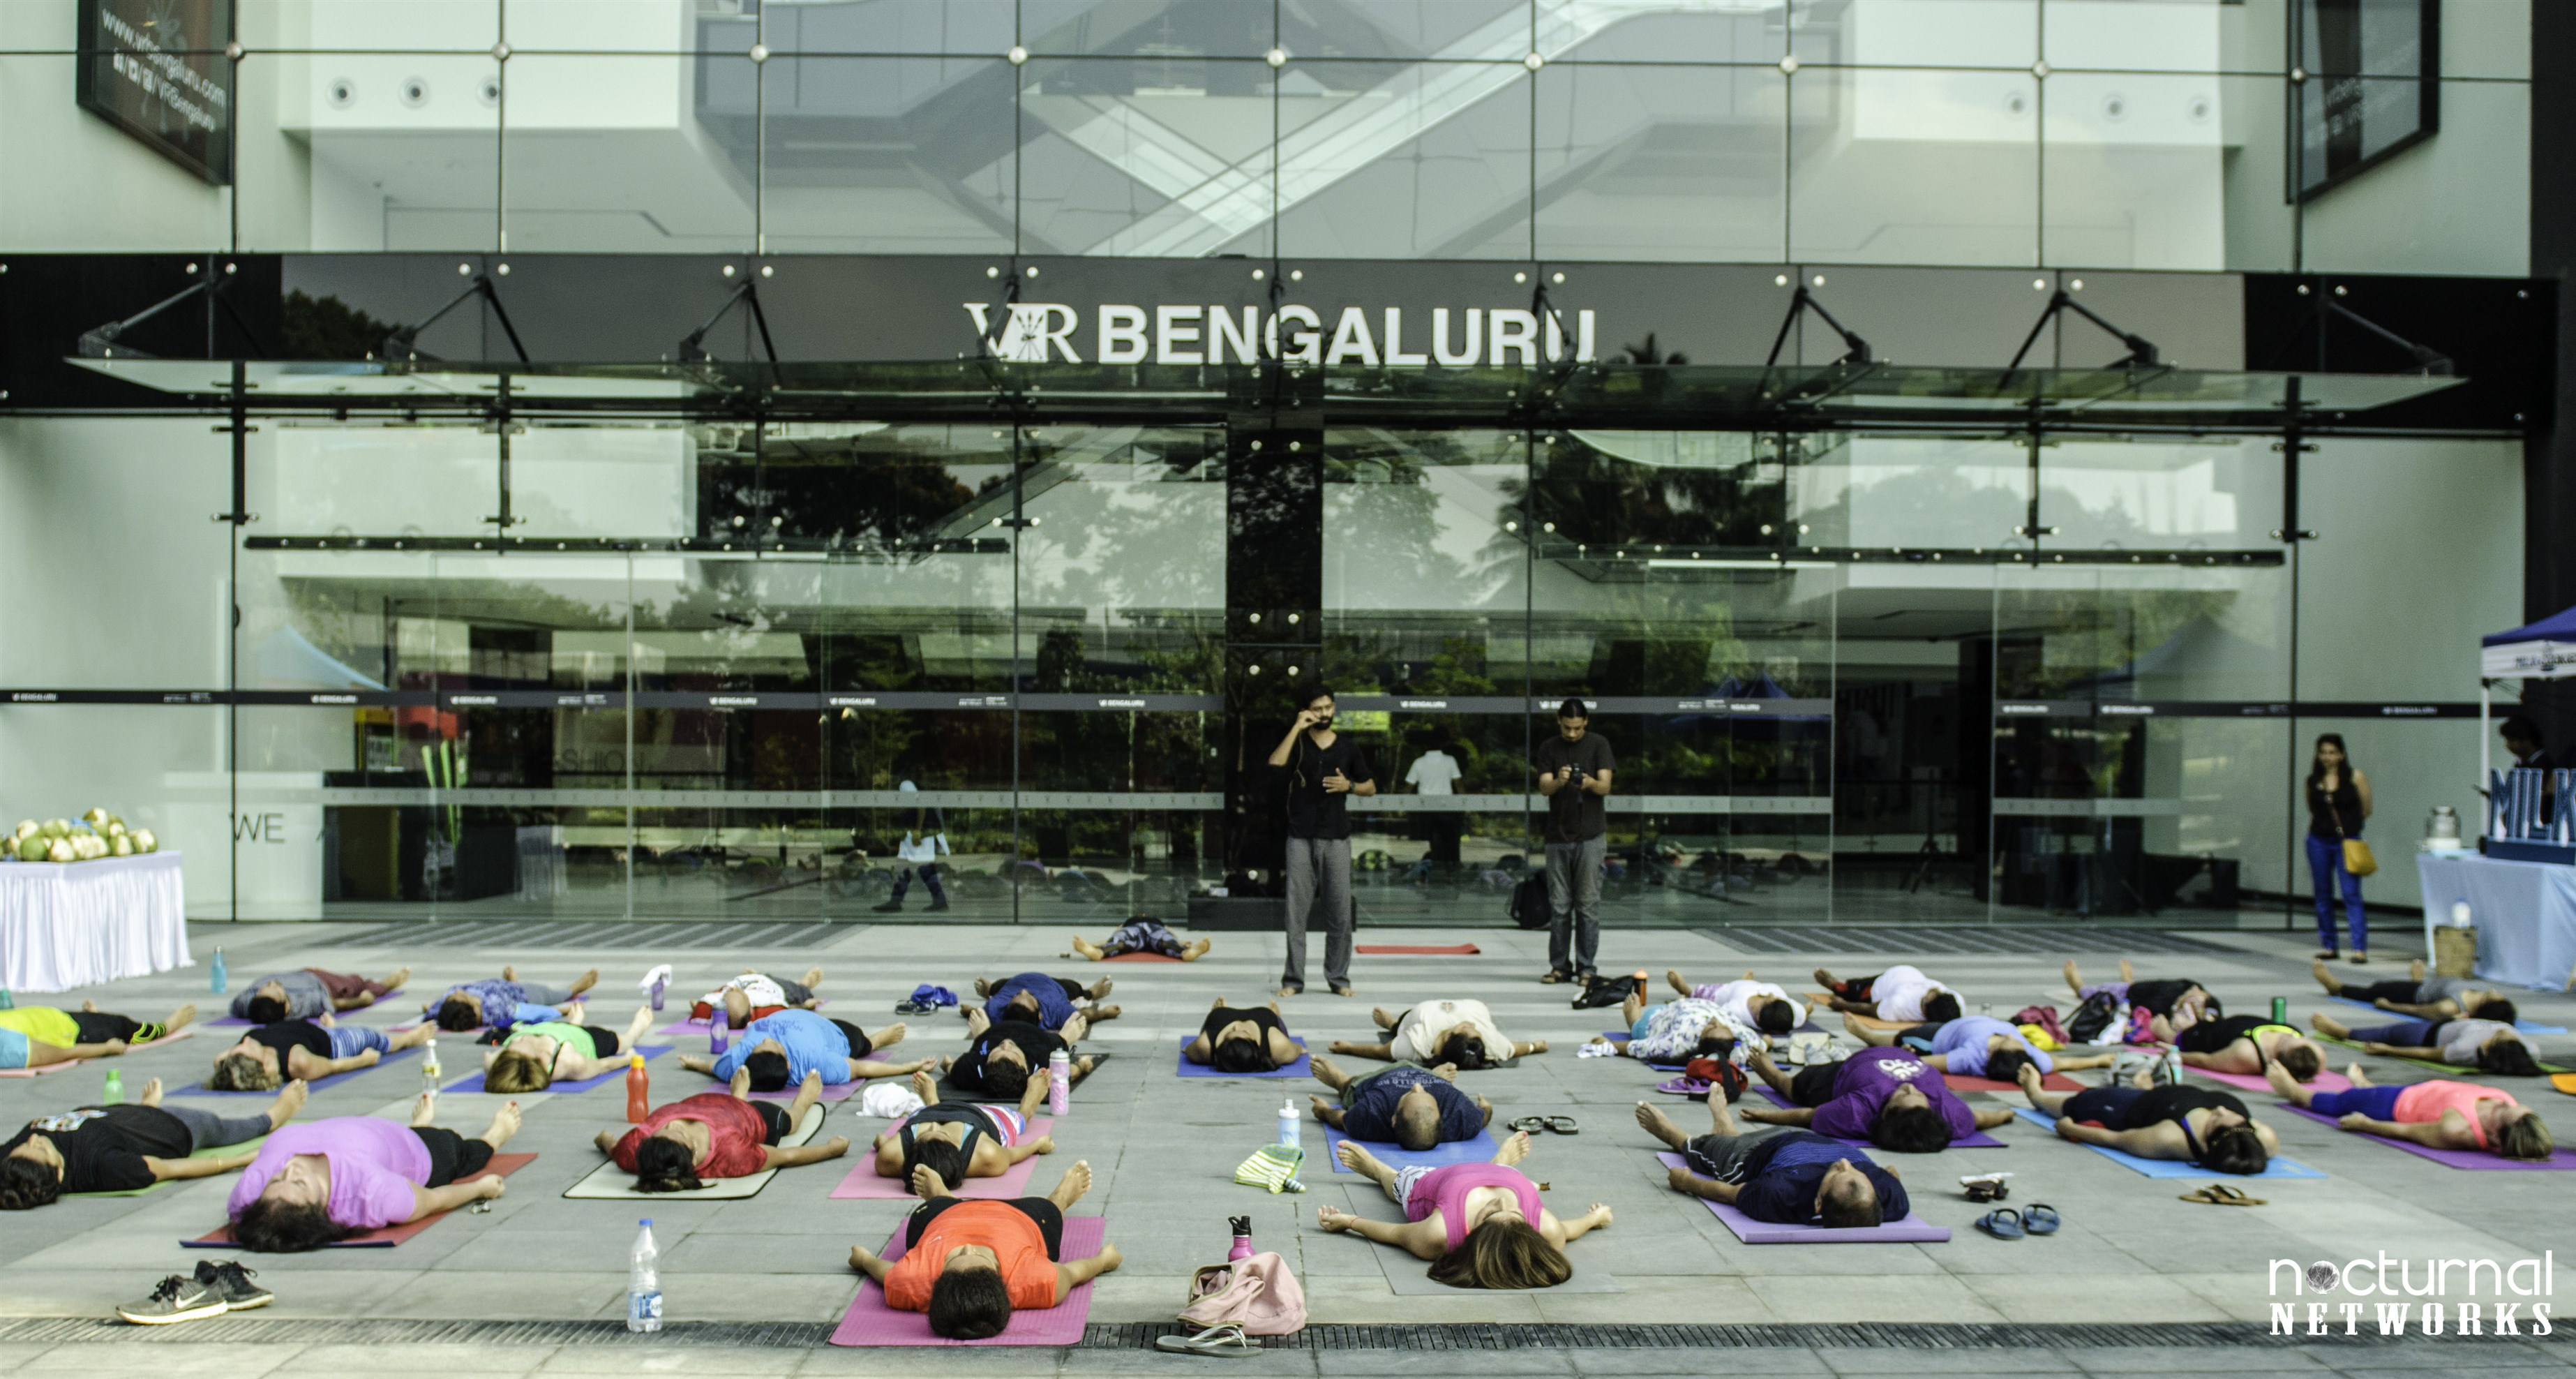 VR Bengaluru - Bloom Yoga 1 (3692 x 1976)